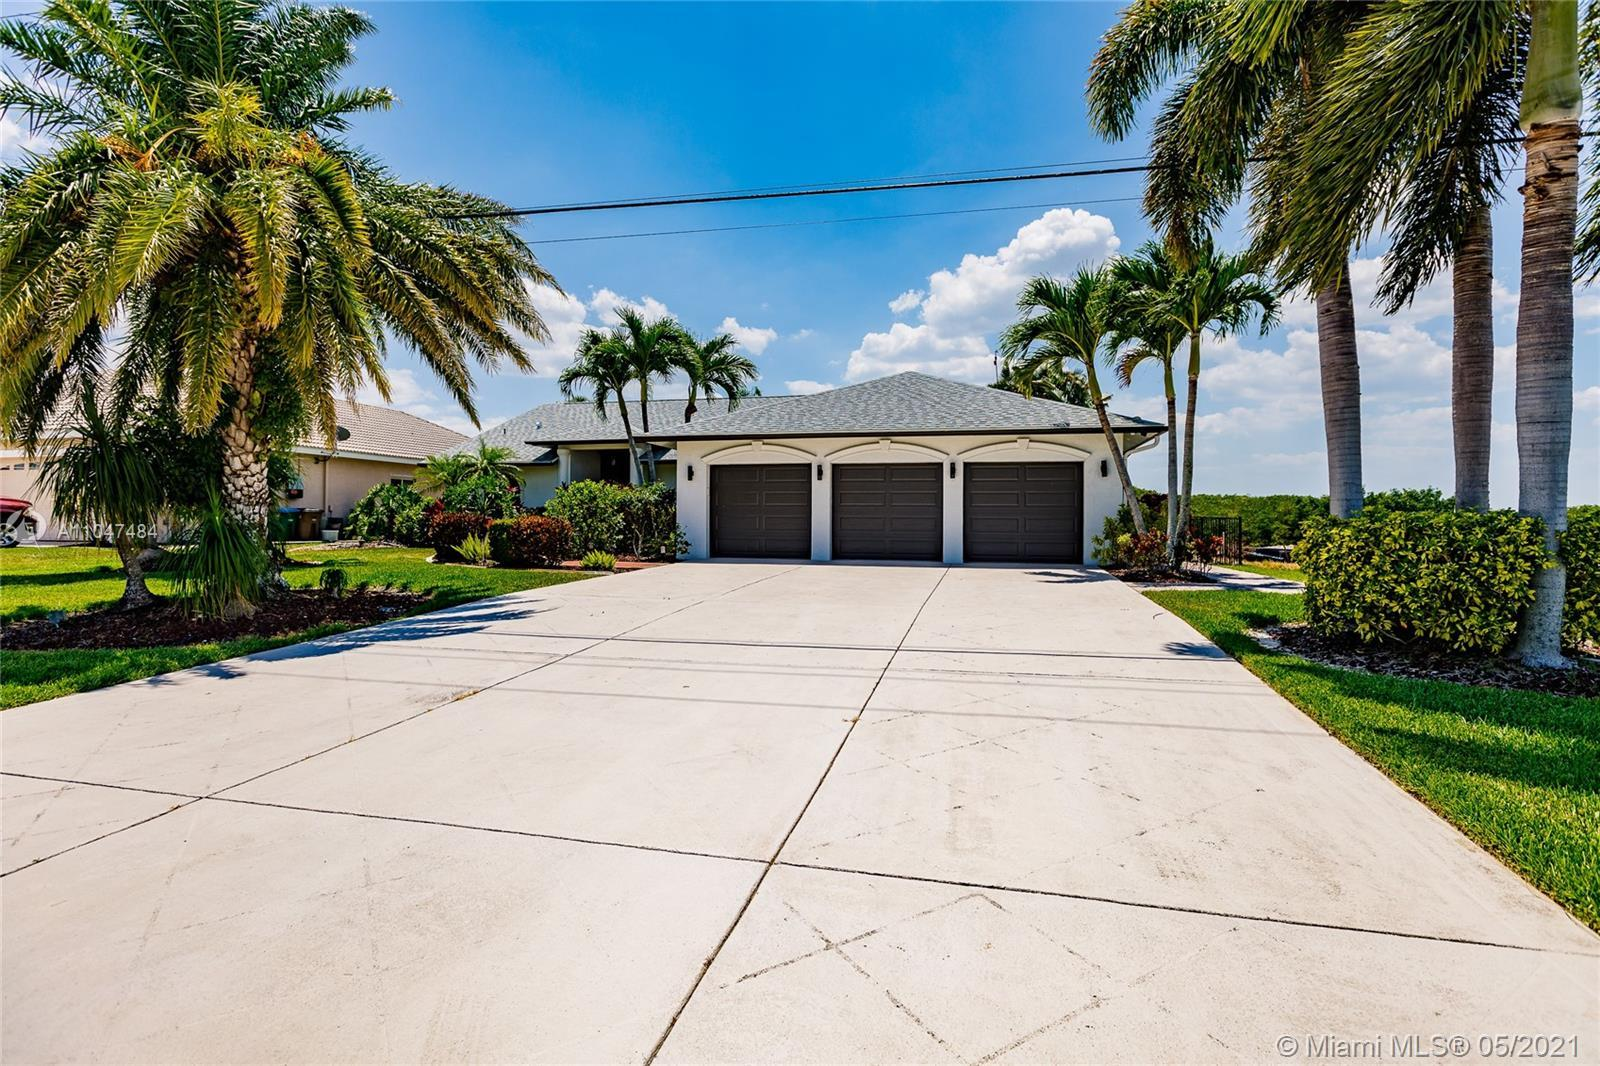 Beautiful water front home on the Spreader Canal in the neighborhood of Surfside. Owner takes pride